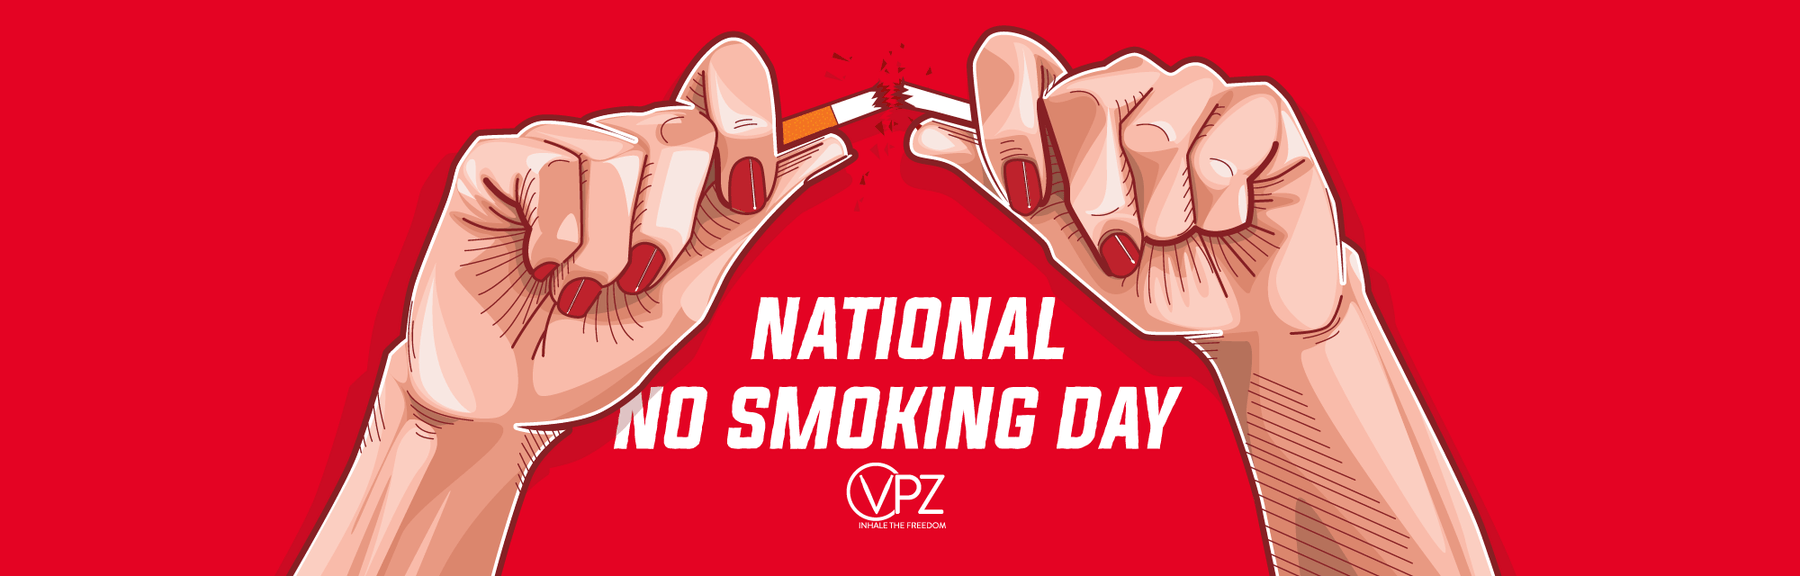 PHE National No Smoking Day